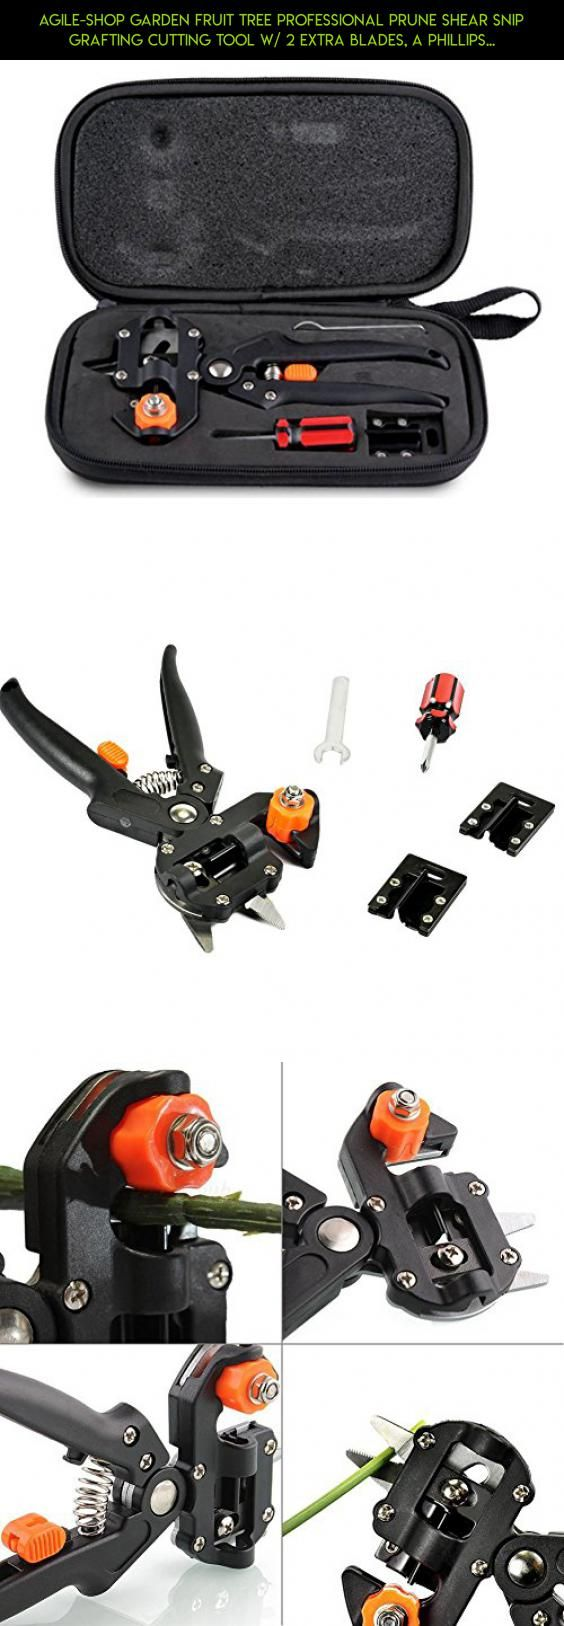 Agile-Shop Garden Fruit Tree Professional Prune Shear Snip Grafting Cutting Tool w/ 2 Extra Blades, a Phillips Screwdriver and a Wrench - Tree Grafting Kit #kit #phillips #products #plans #drone #technology #trimmers #shopping #racing #in #parts #fpv #camera #gadgets #tech